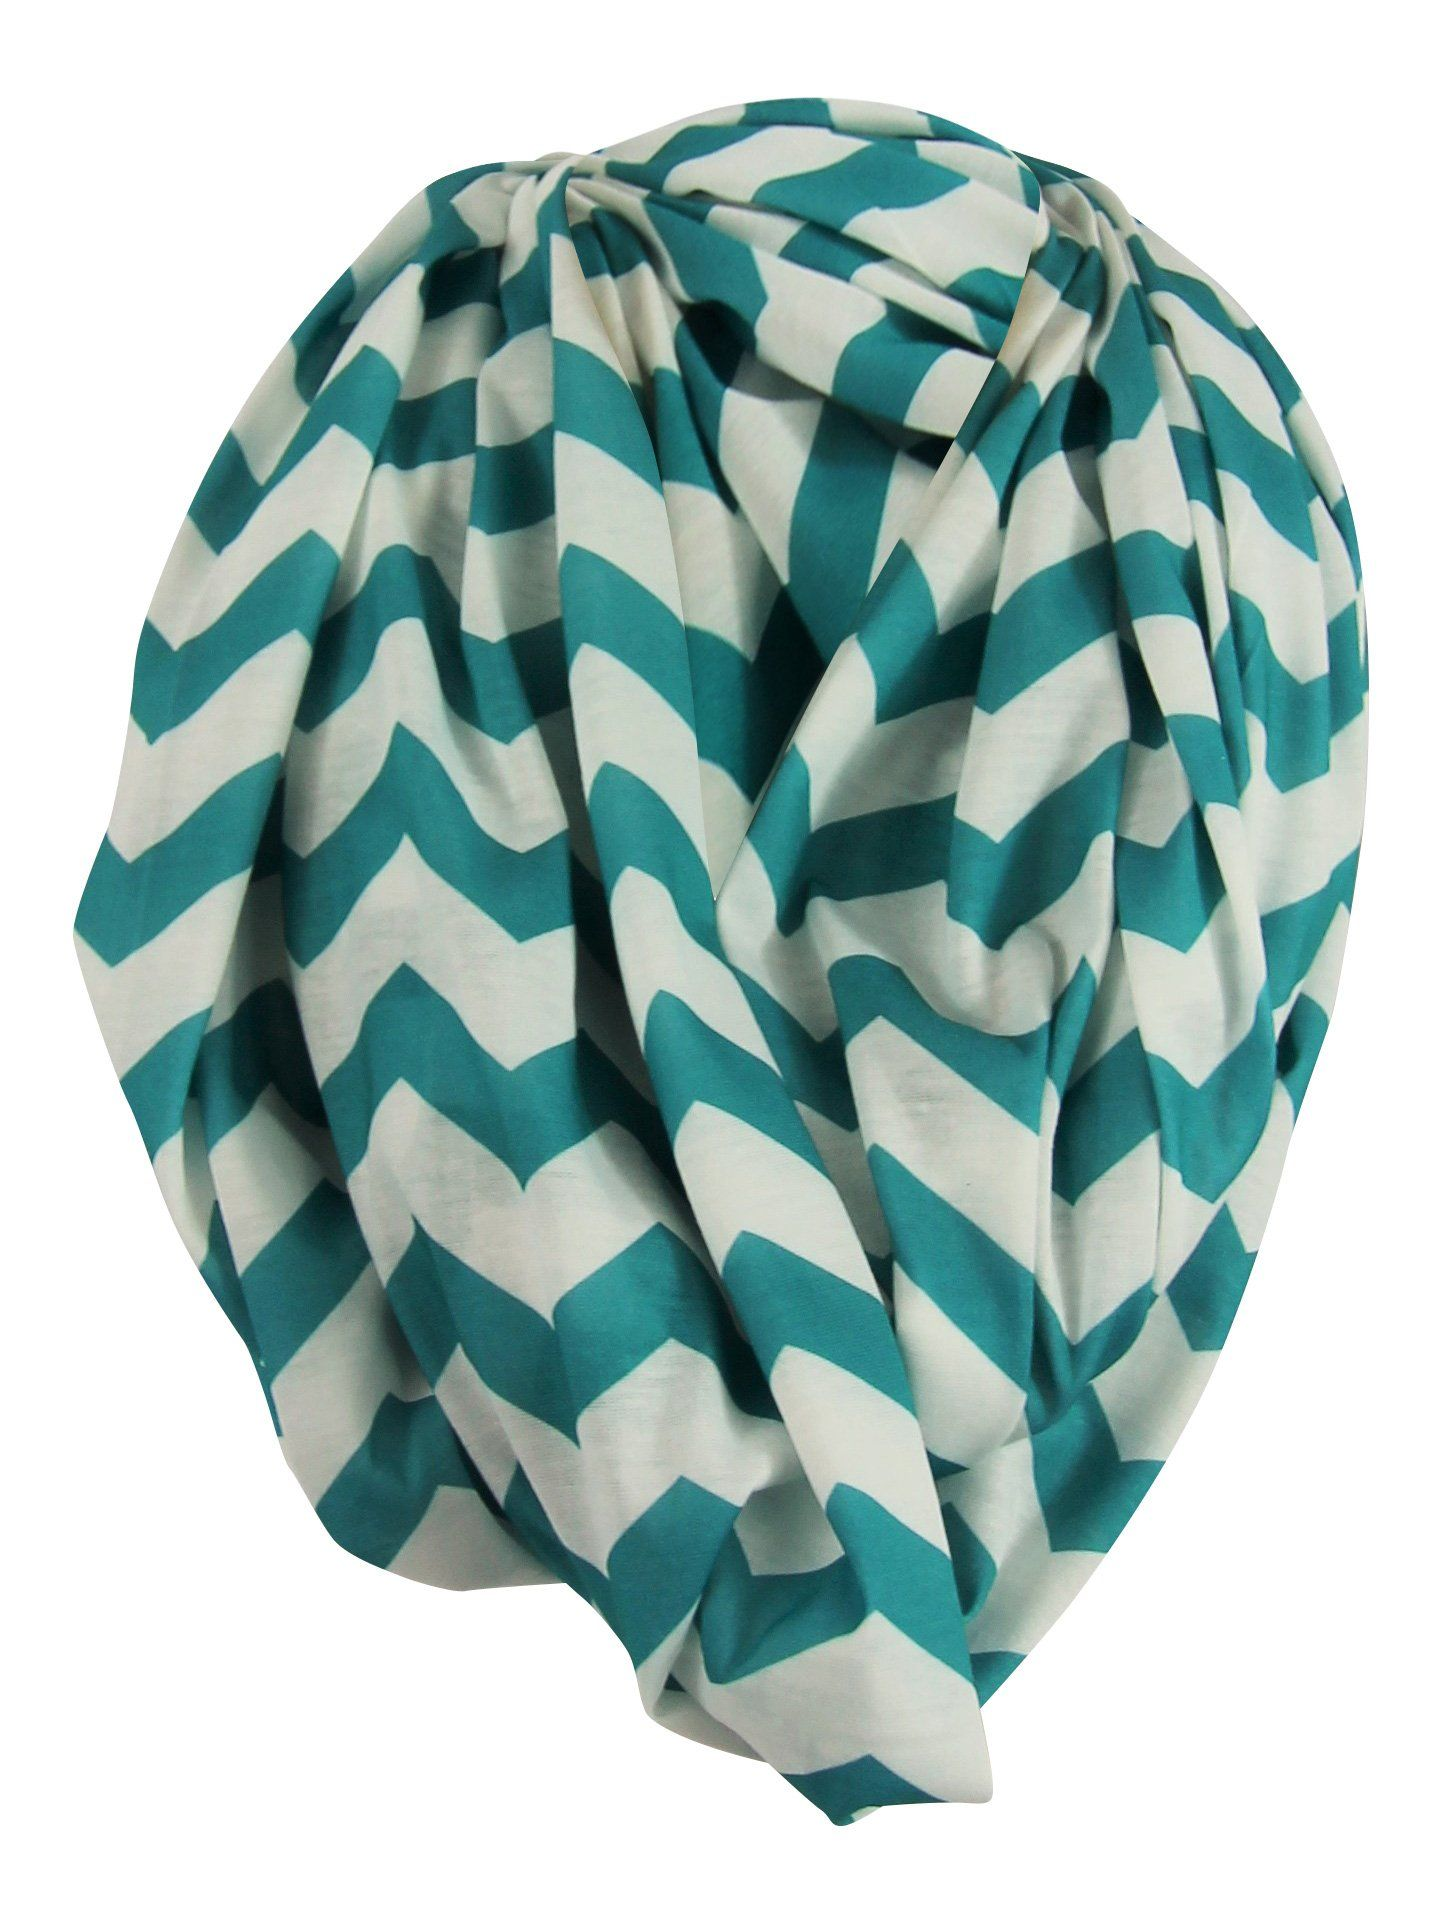 or Blanket Wearable Infinity Nursing Cover for Breast-Feeding Moms by Tykes /& Tails Changing Pad Teal /& White Chevron Pattern Burp Cloth Multi-Use as Scarf